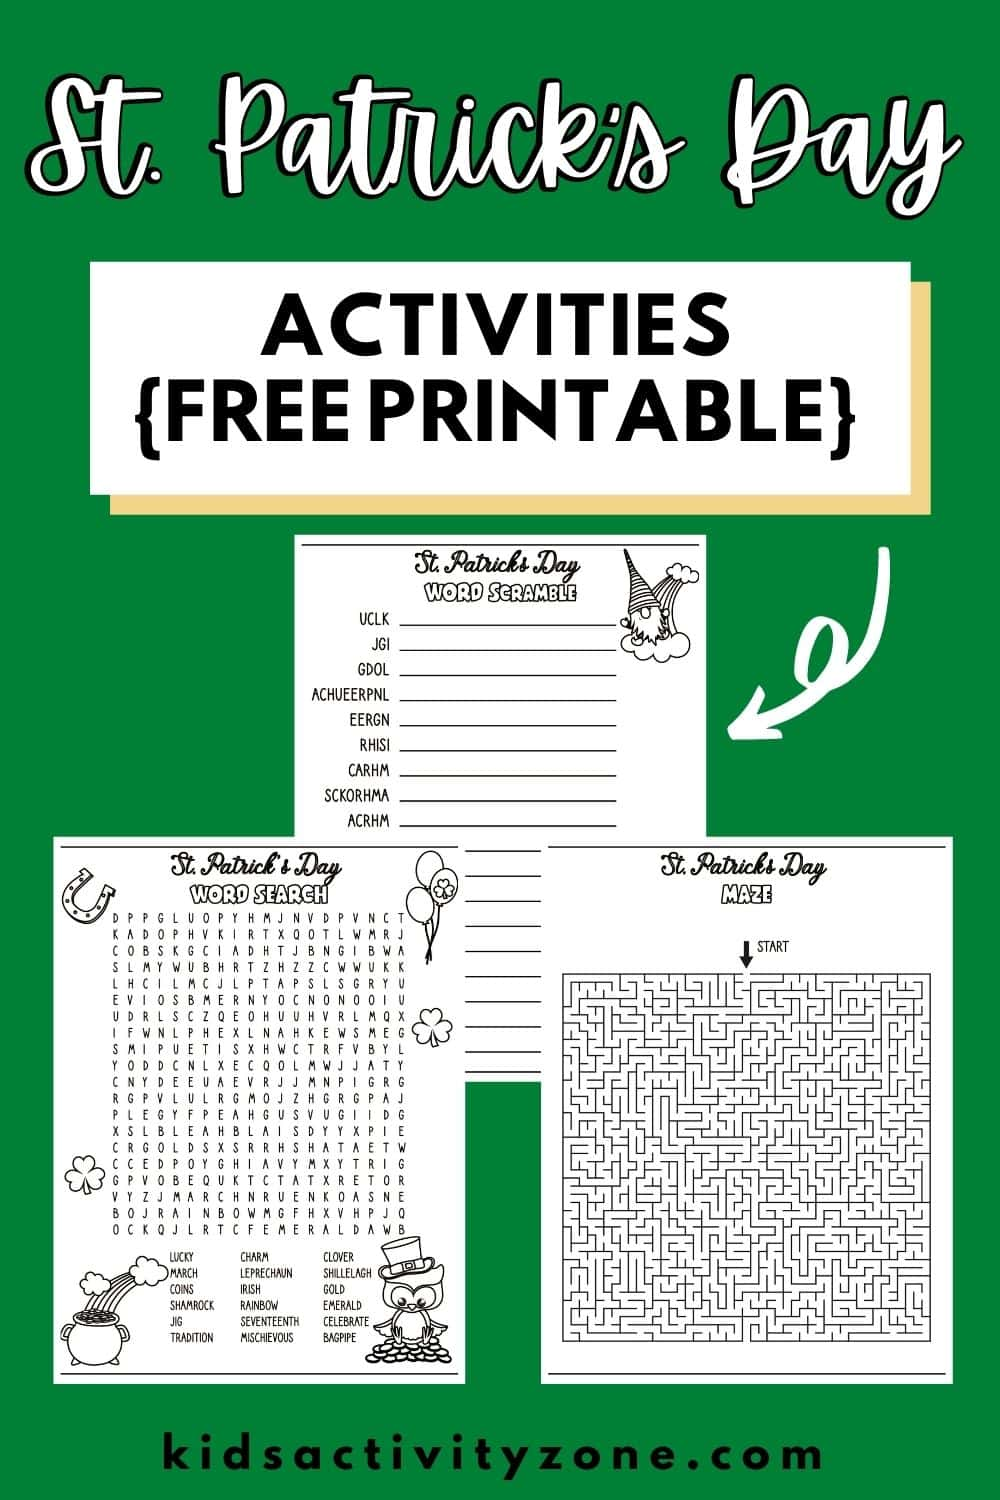 St. Patrick's Day Printable Activities! These free printables include word searches, mazes, anagrams and more. So much fun for classroom parties, groups, school activities and more.